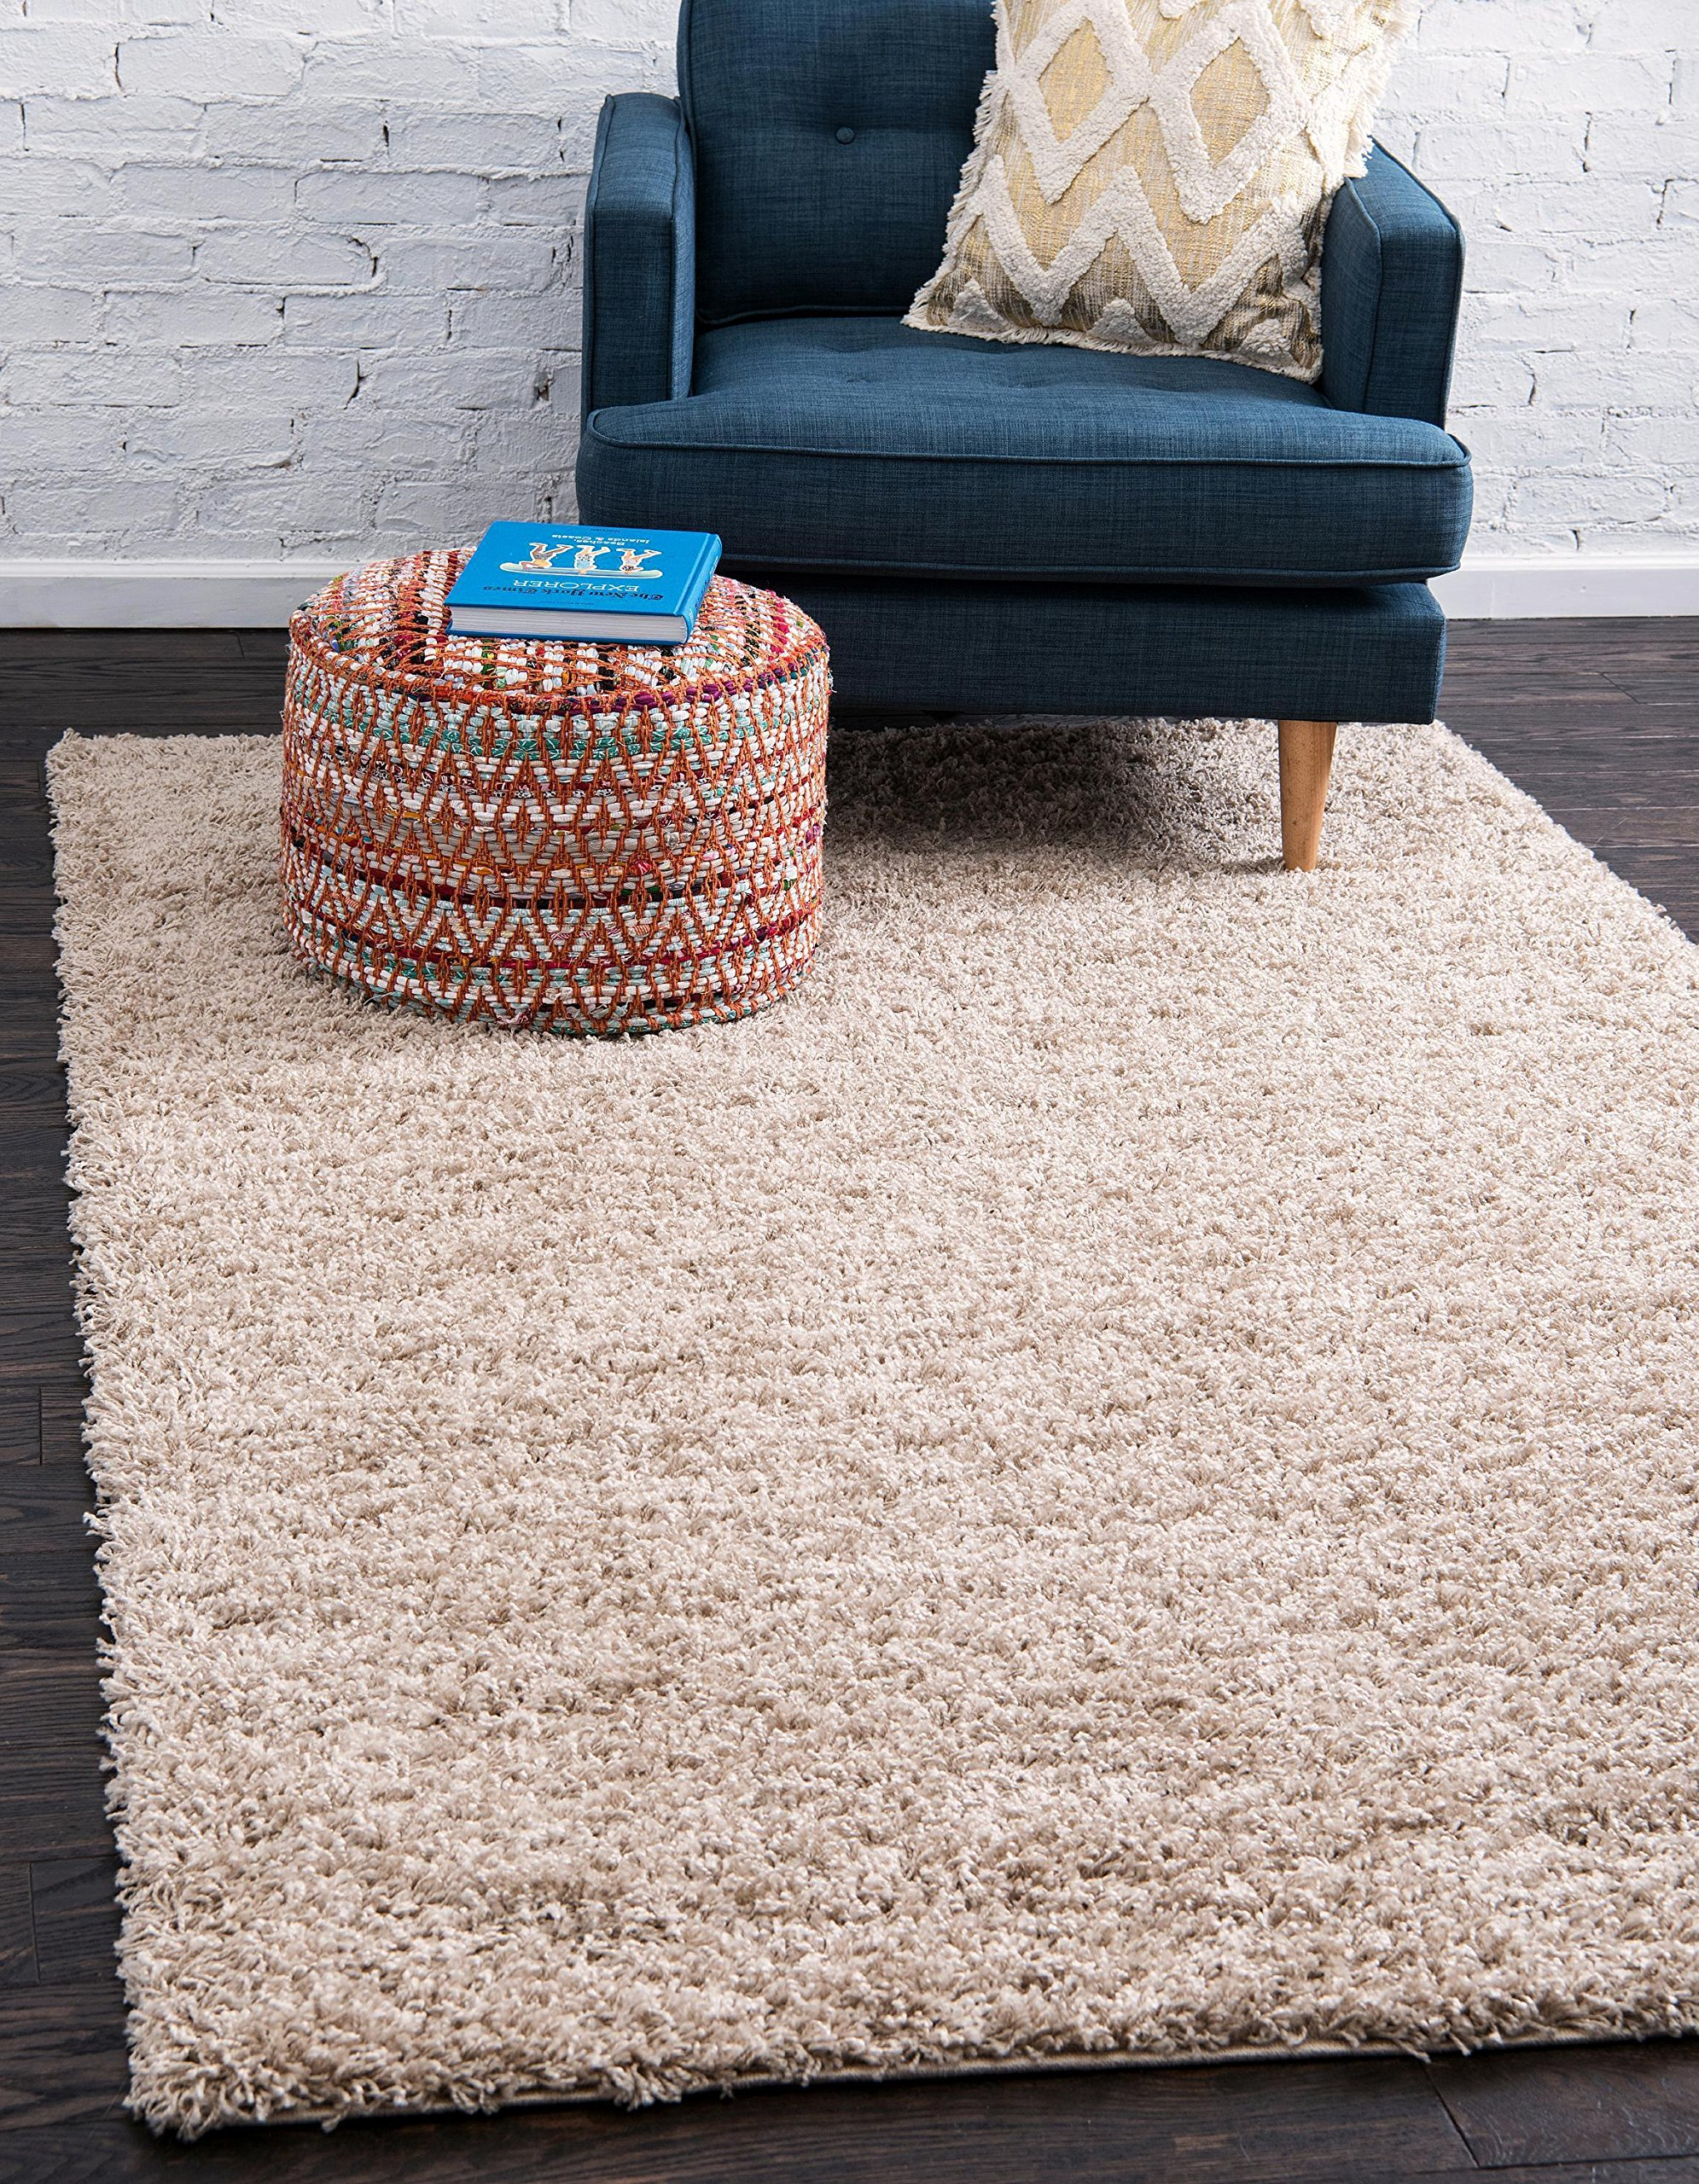 Unique Loom Solo Solid Shag Collection Modern Plush Taupe Area Rug (6' 0 x 9' 0)